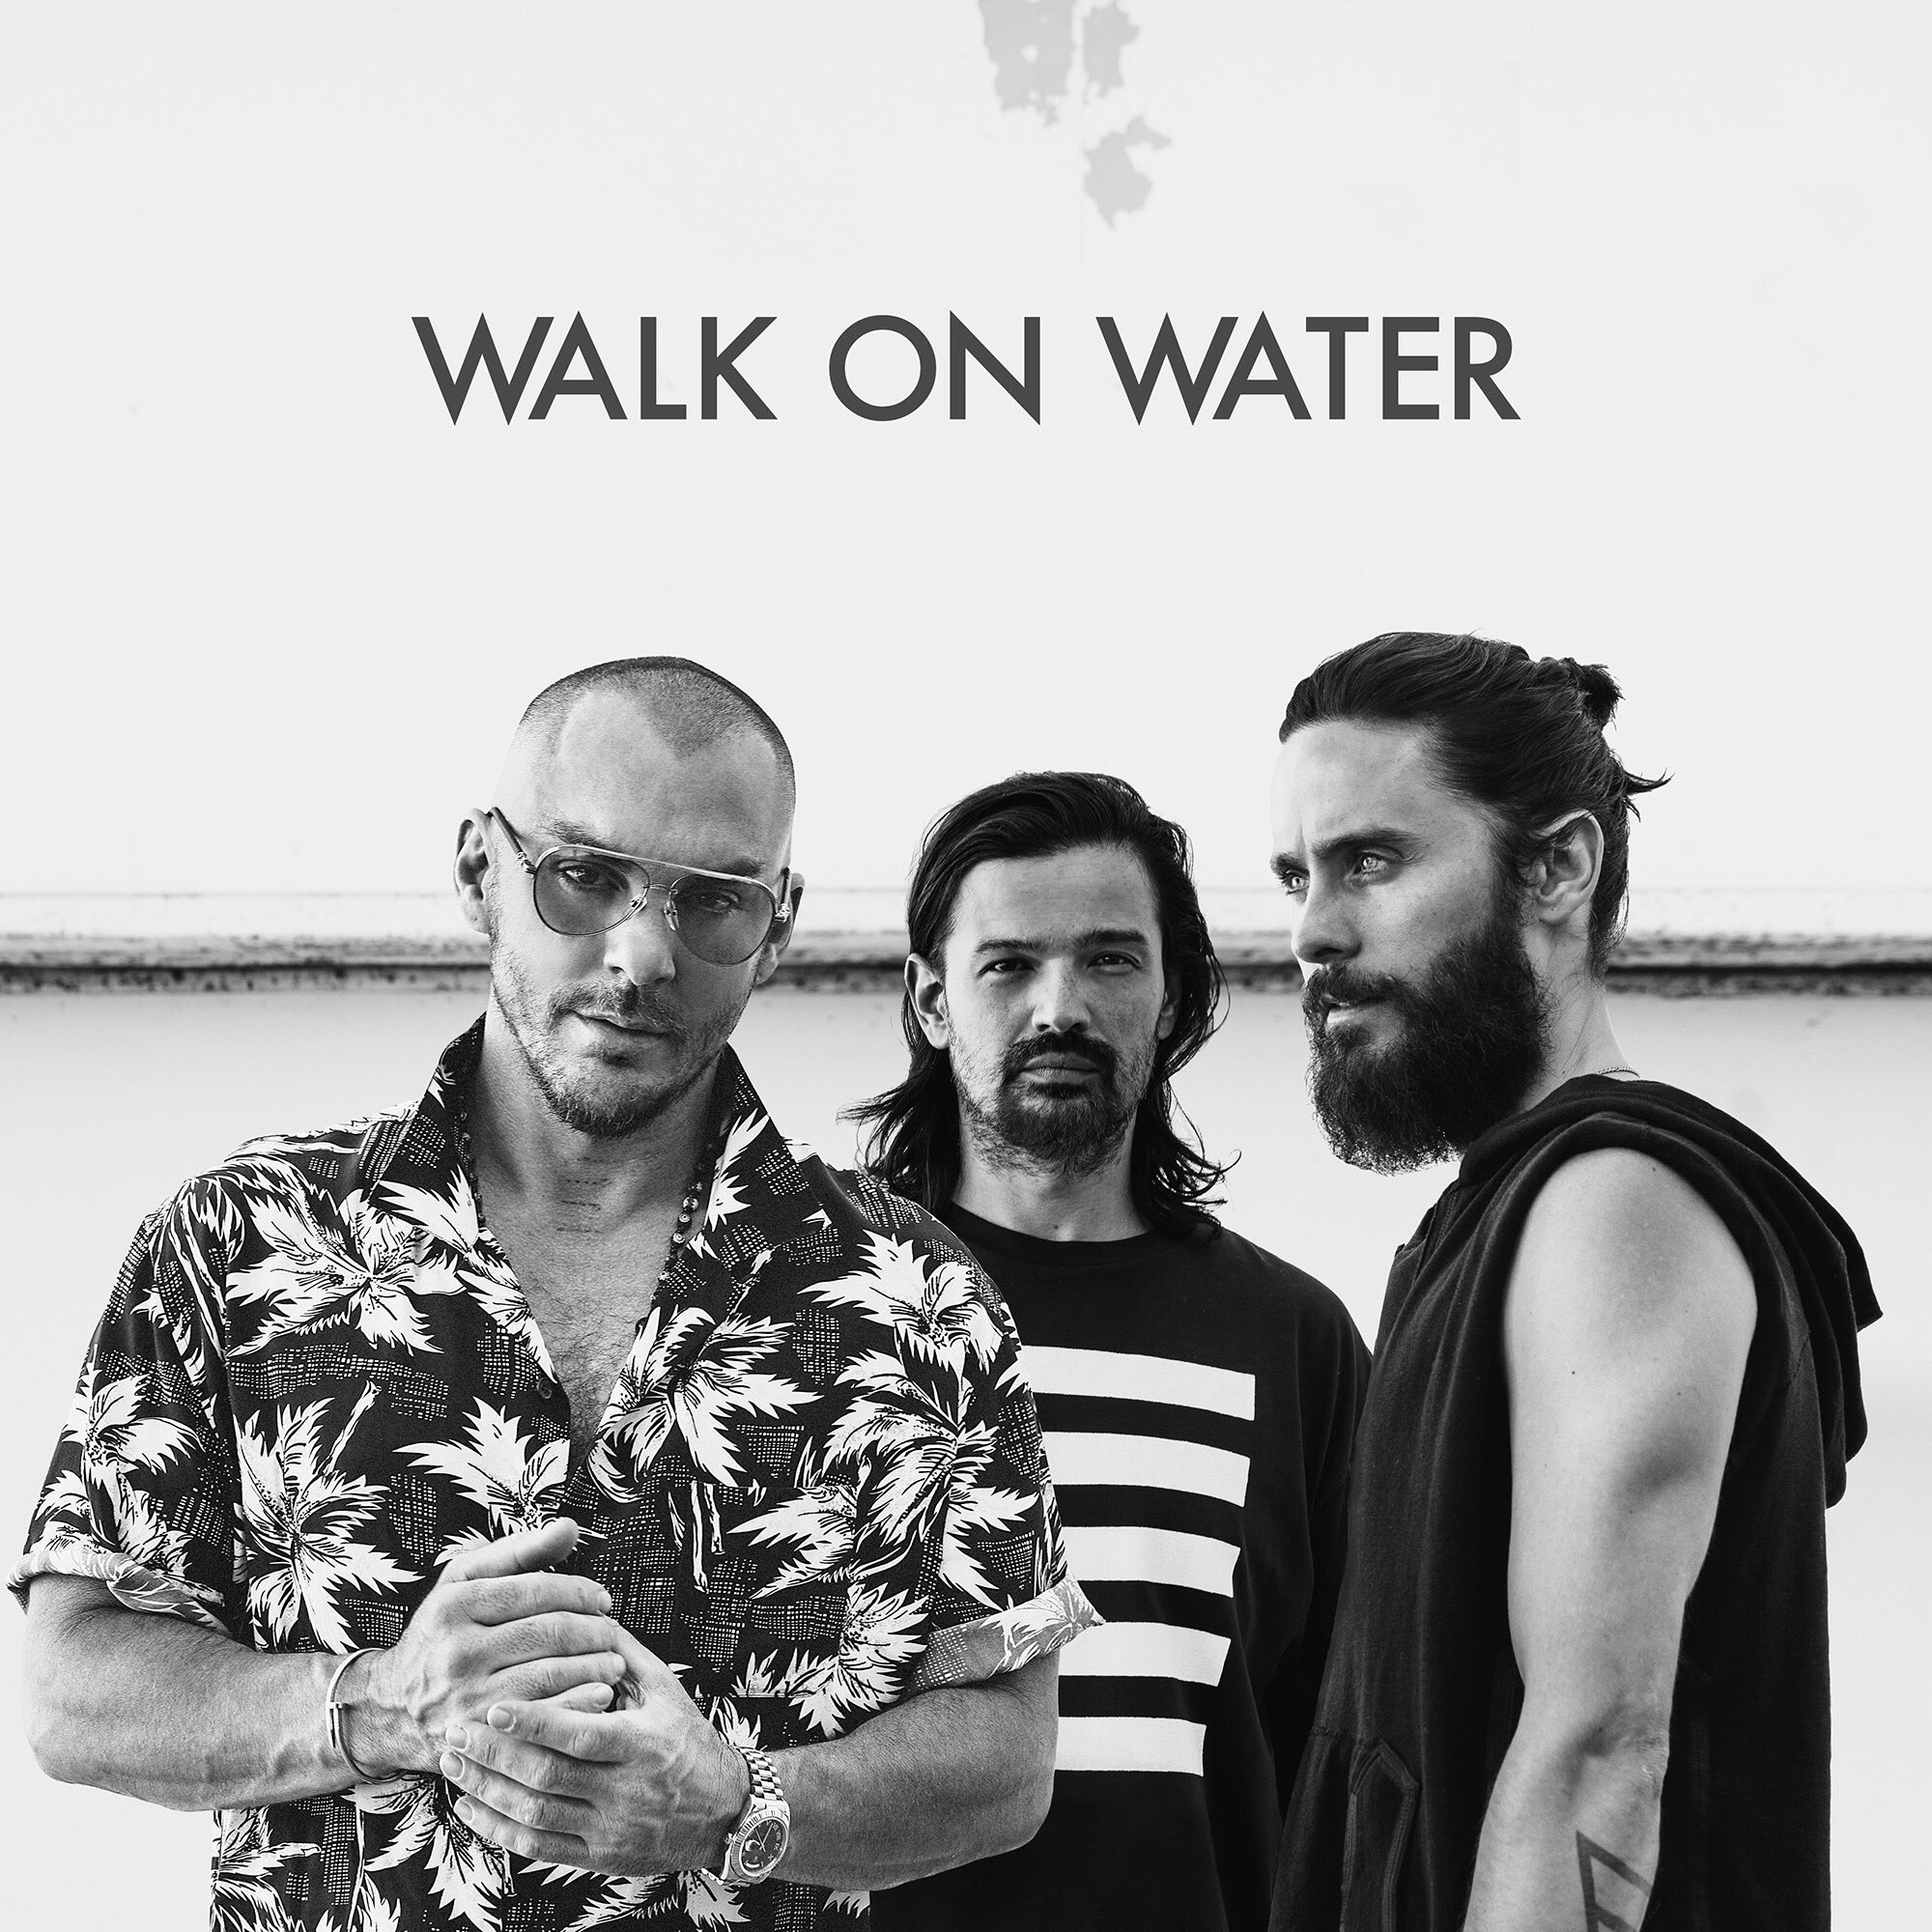 Only 5 DAYS until WALK ON WATER / AUG 22. #WalkOnWater https://t.co/I81Za2j7EB